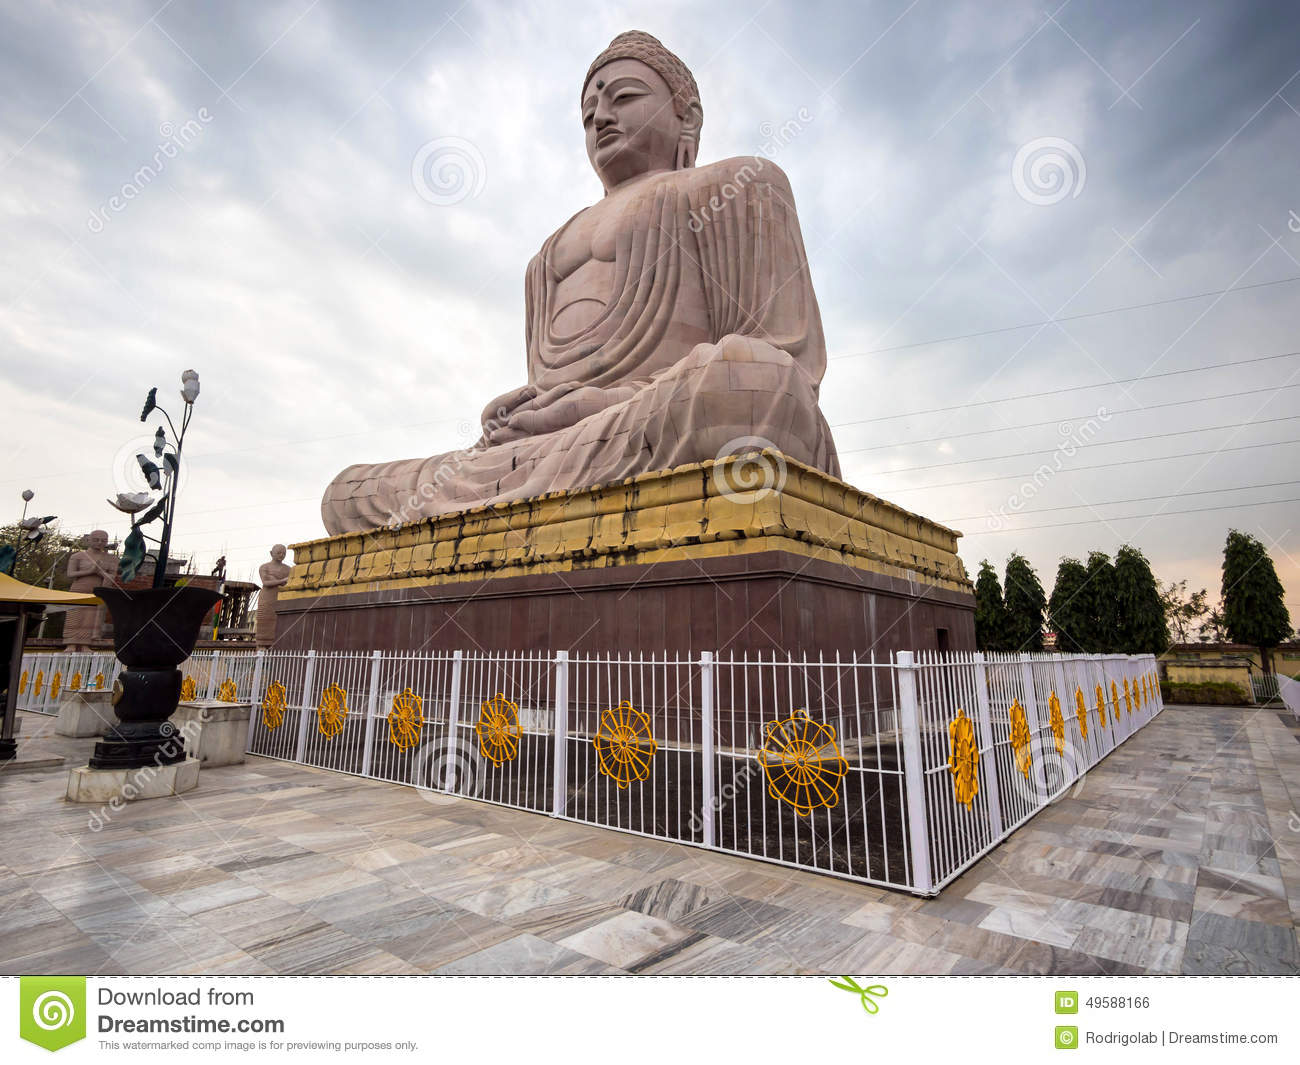 the great buddha statue in bodhgaya india stock photo image 49588166. Black Bedroom Furniture Sets. Home Design Ideas